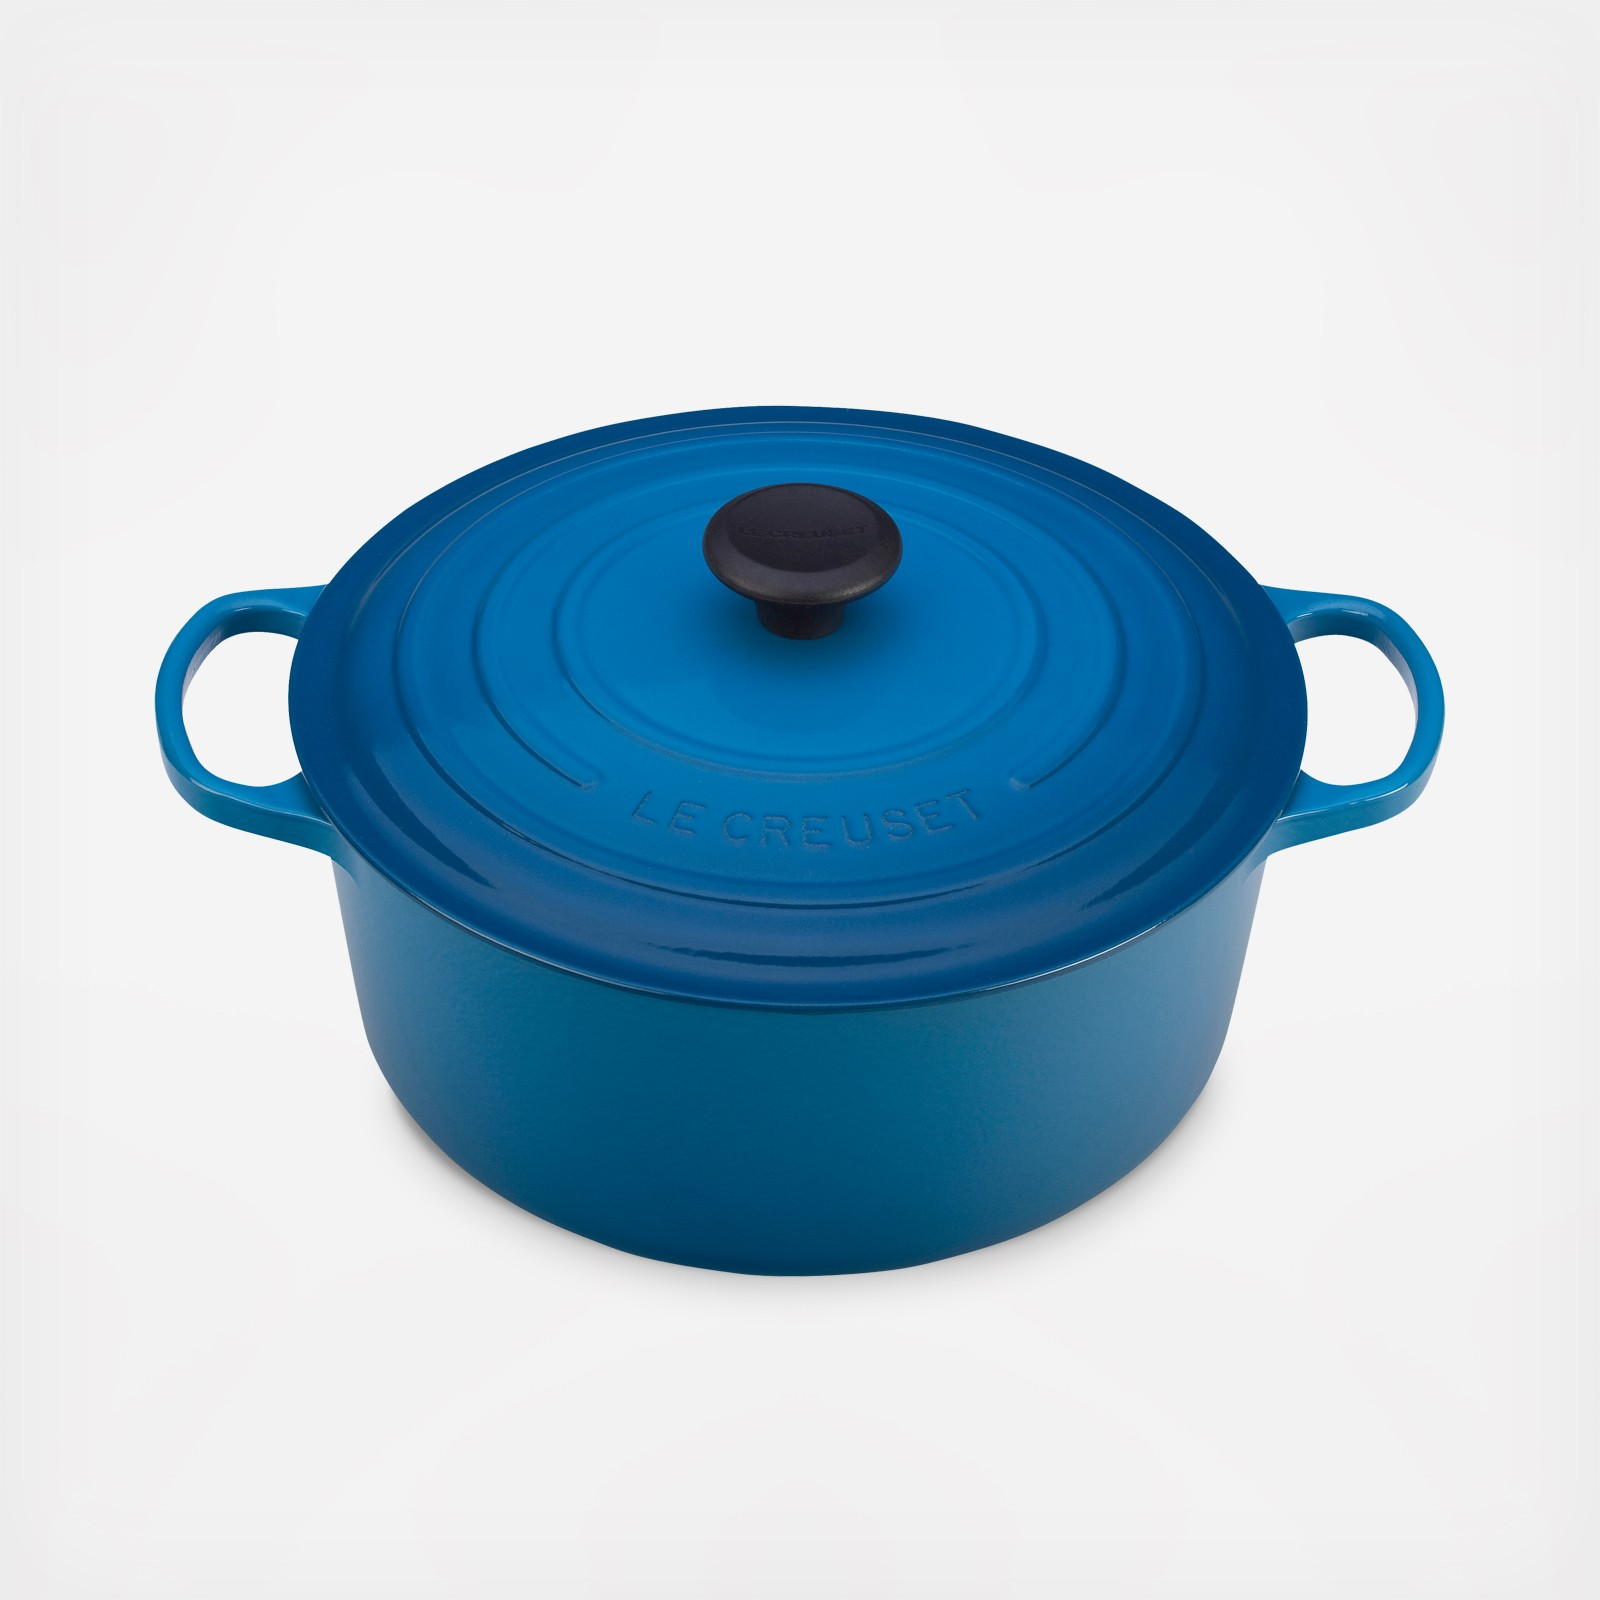 Signature Round Dutch Oven By Le Creuset Wedding